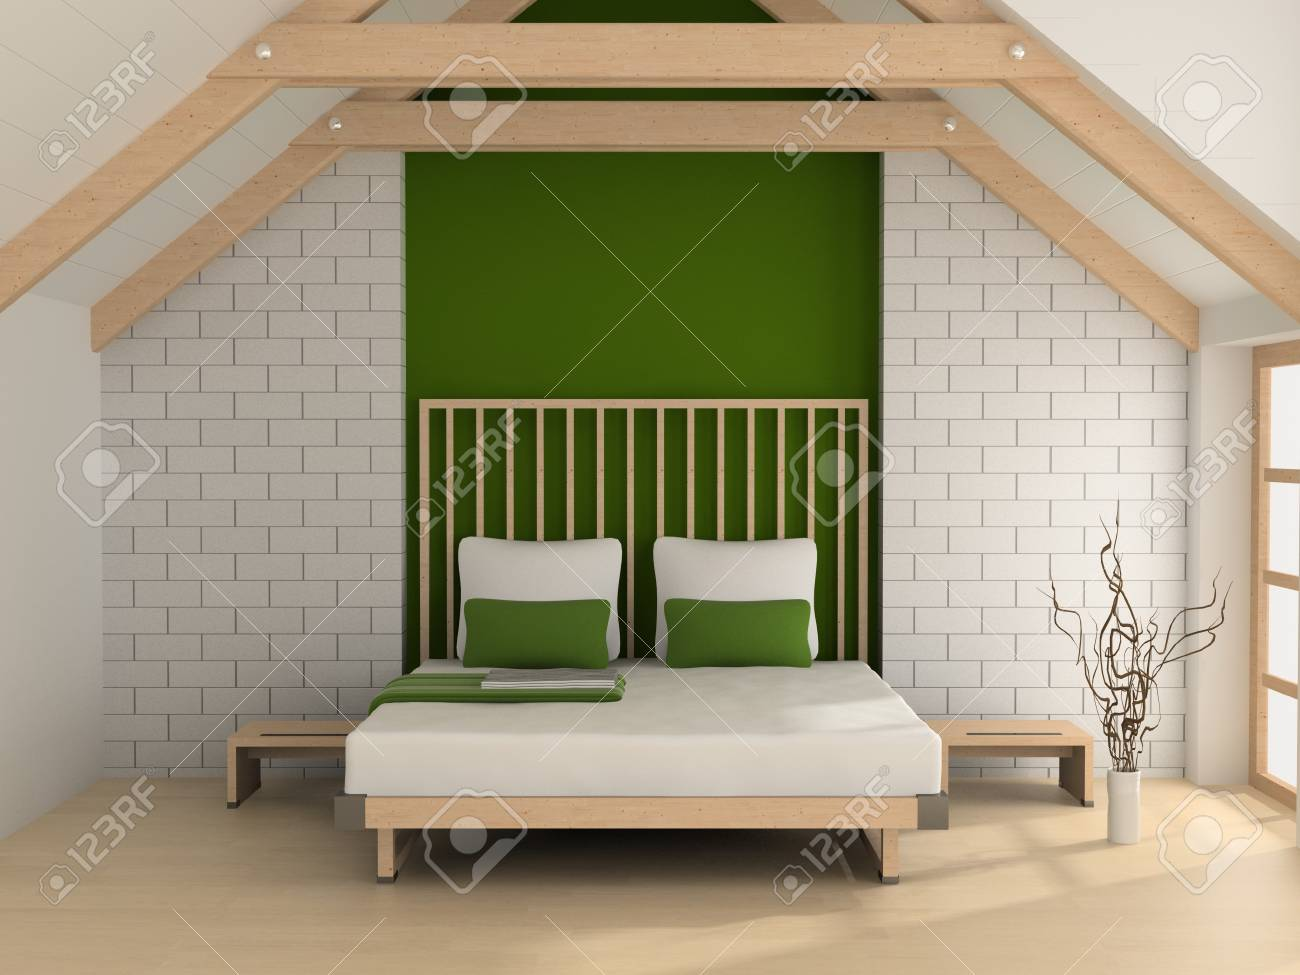 Modern interior of a bedroom room 3D Stock Photo - 7109245